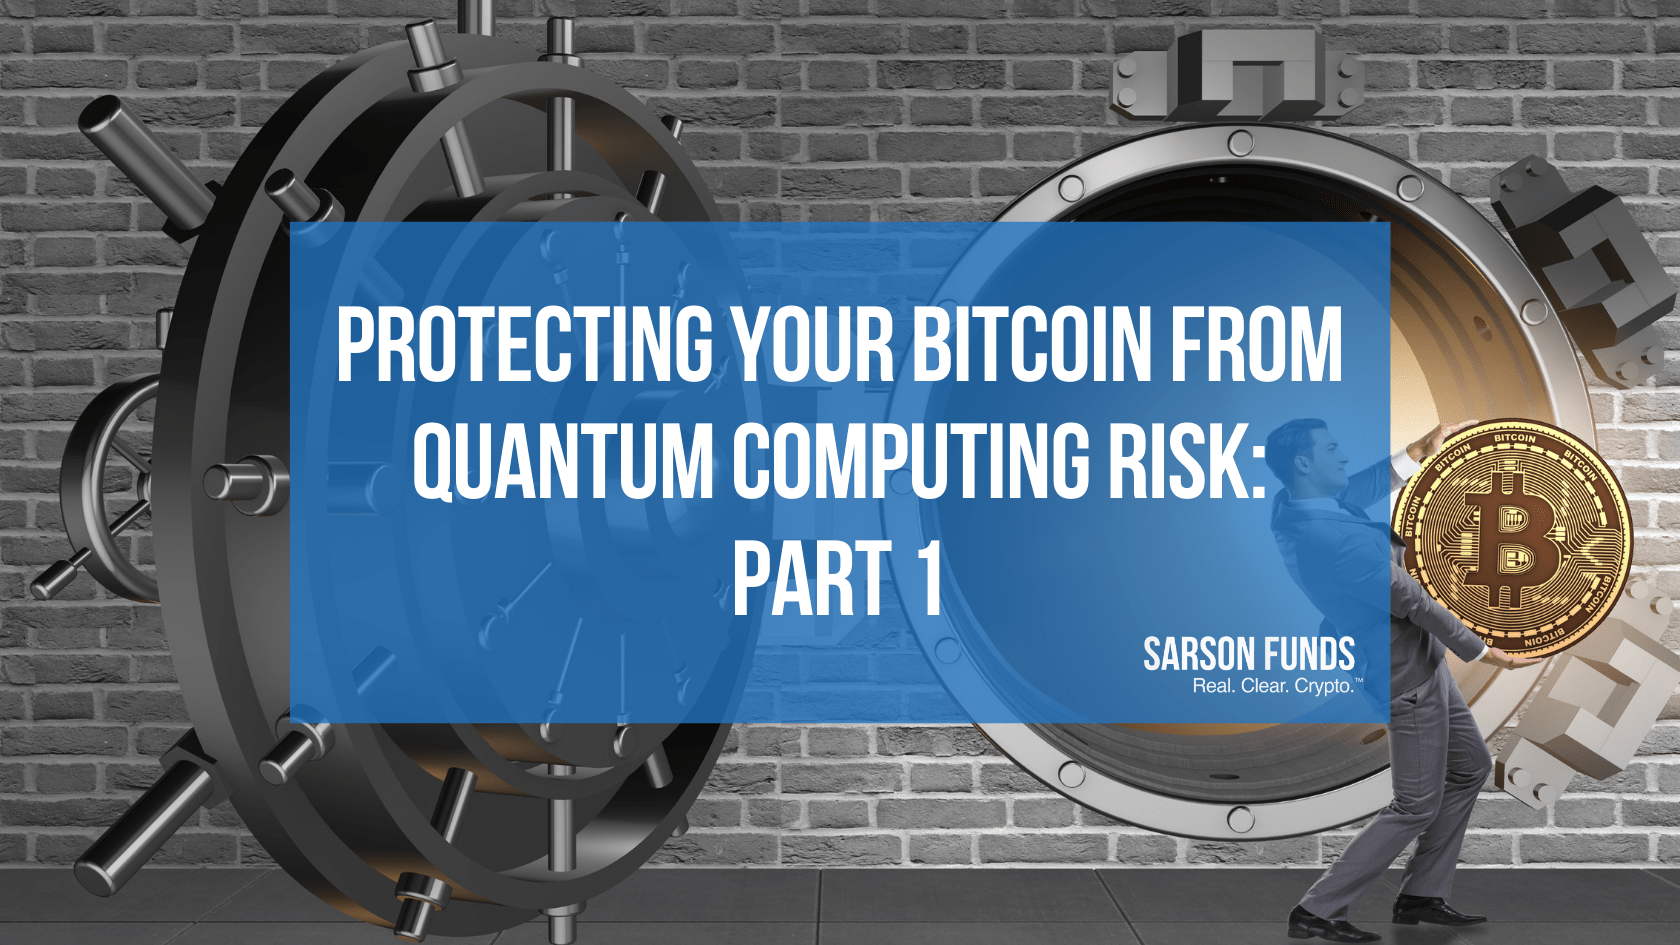 Protecting Bitcoin from Quantum Computing Risk